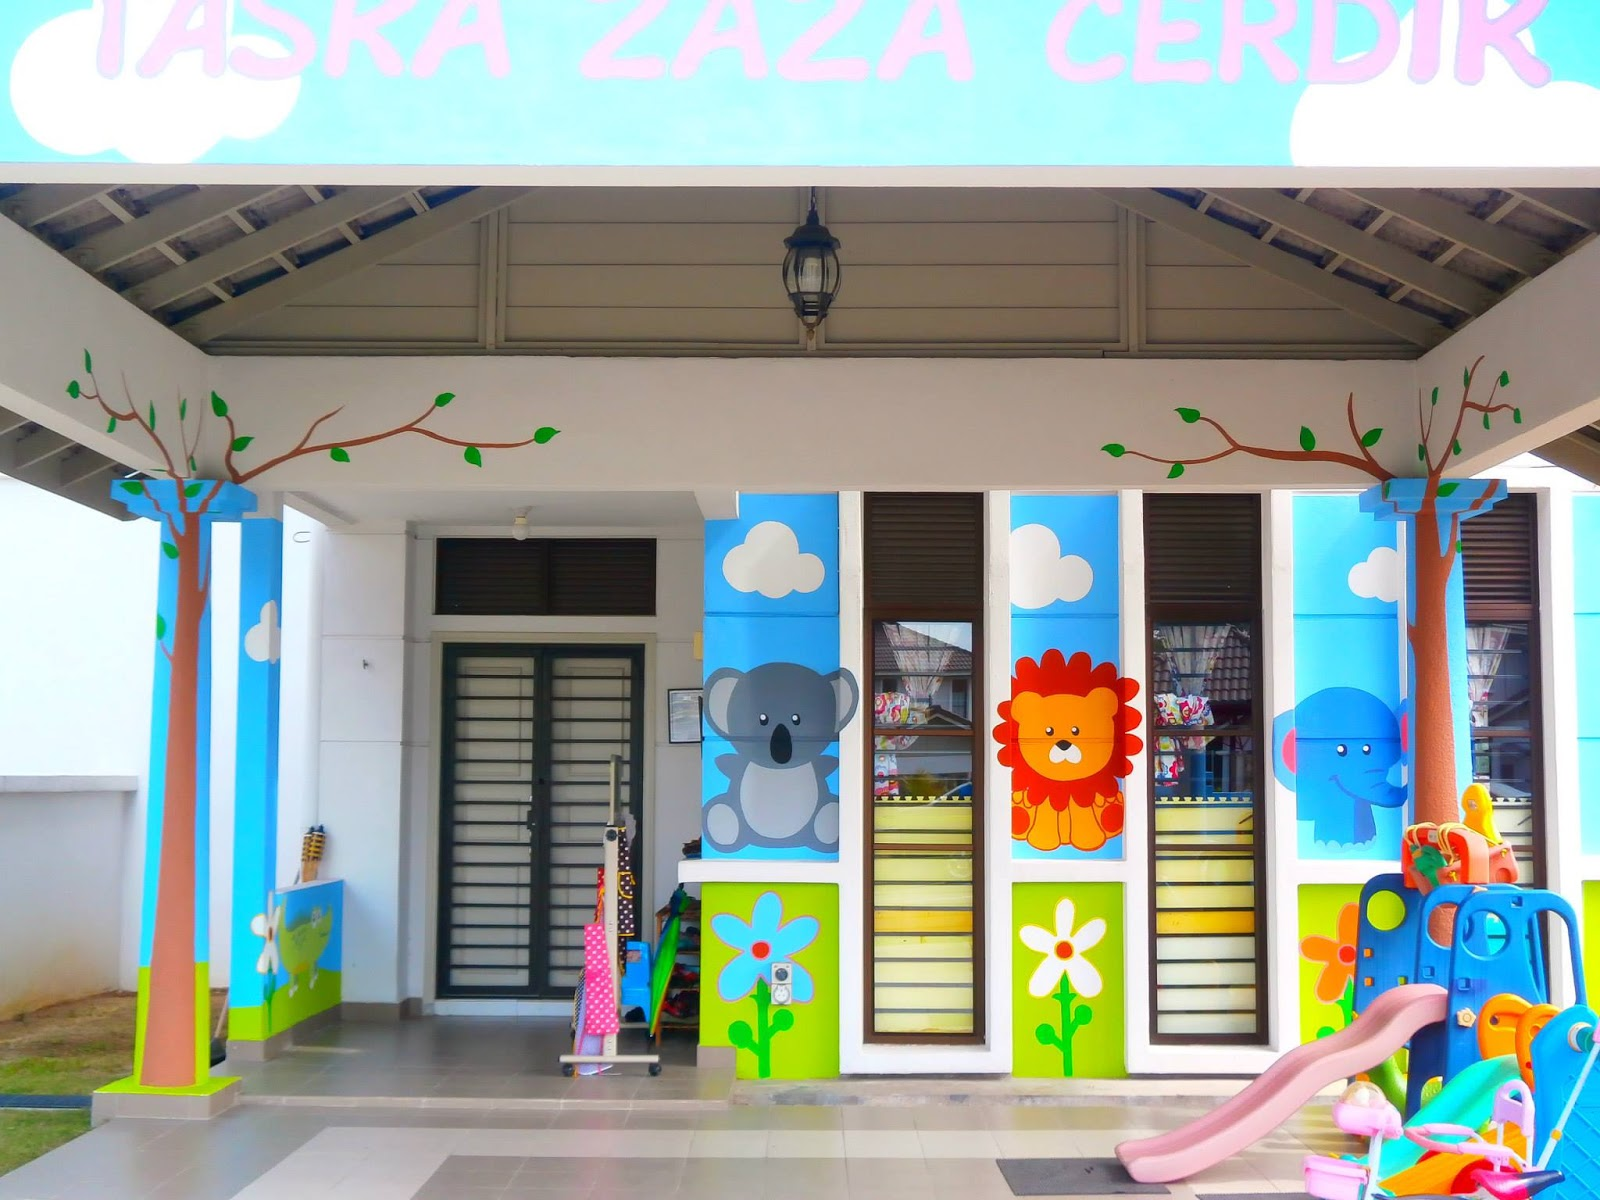 warna arts happiness in mural painting taska zaza cerdik